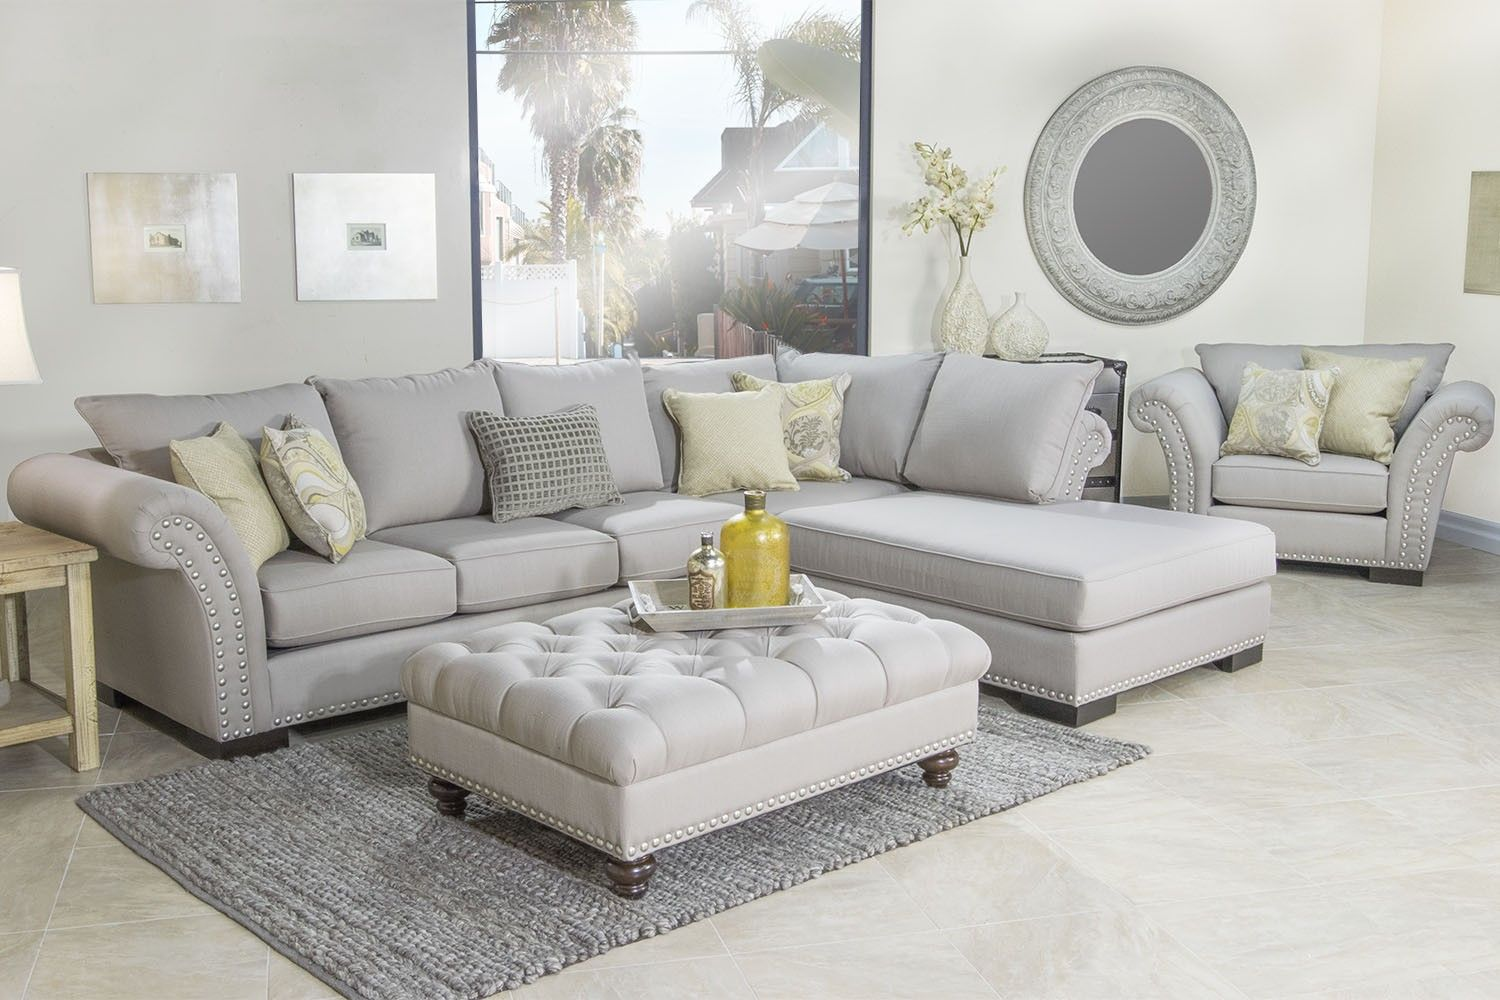 Klein Living Room Mor Furniture For Less With Images Living